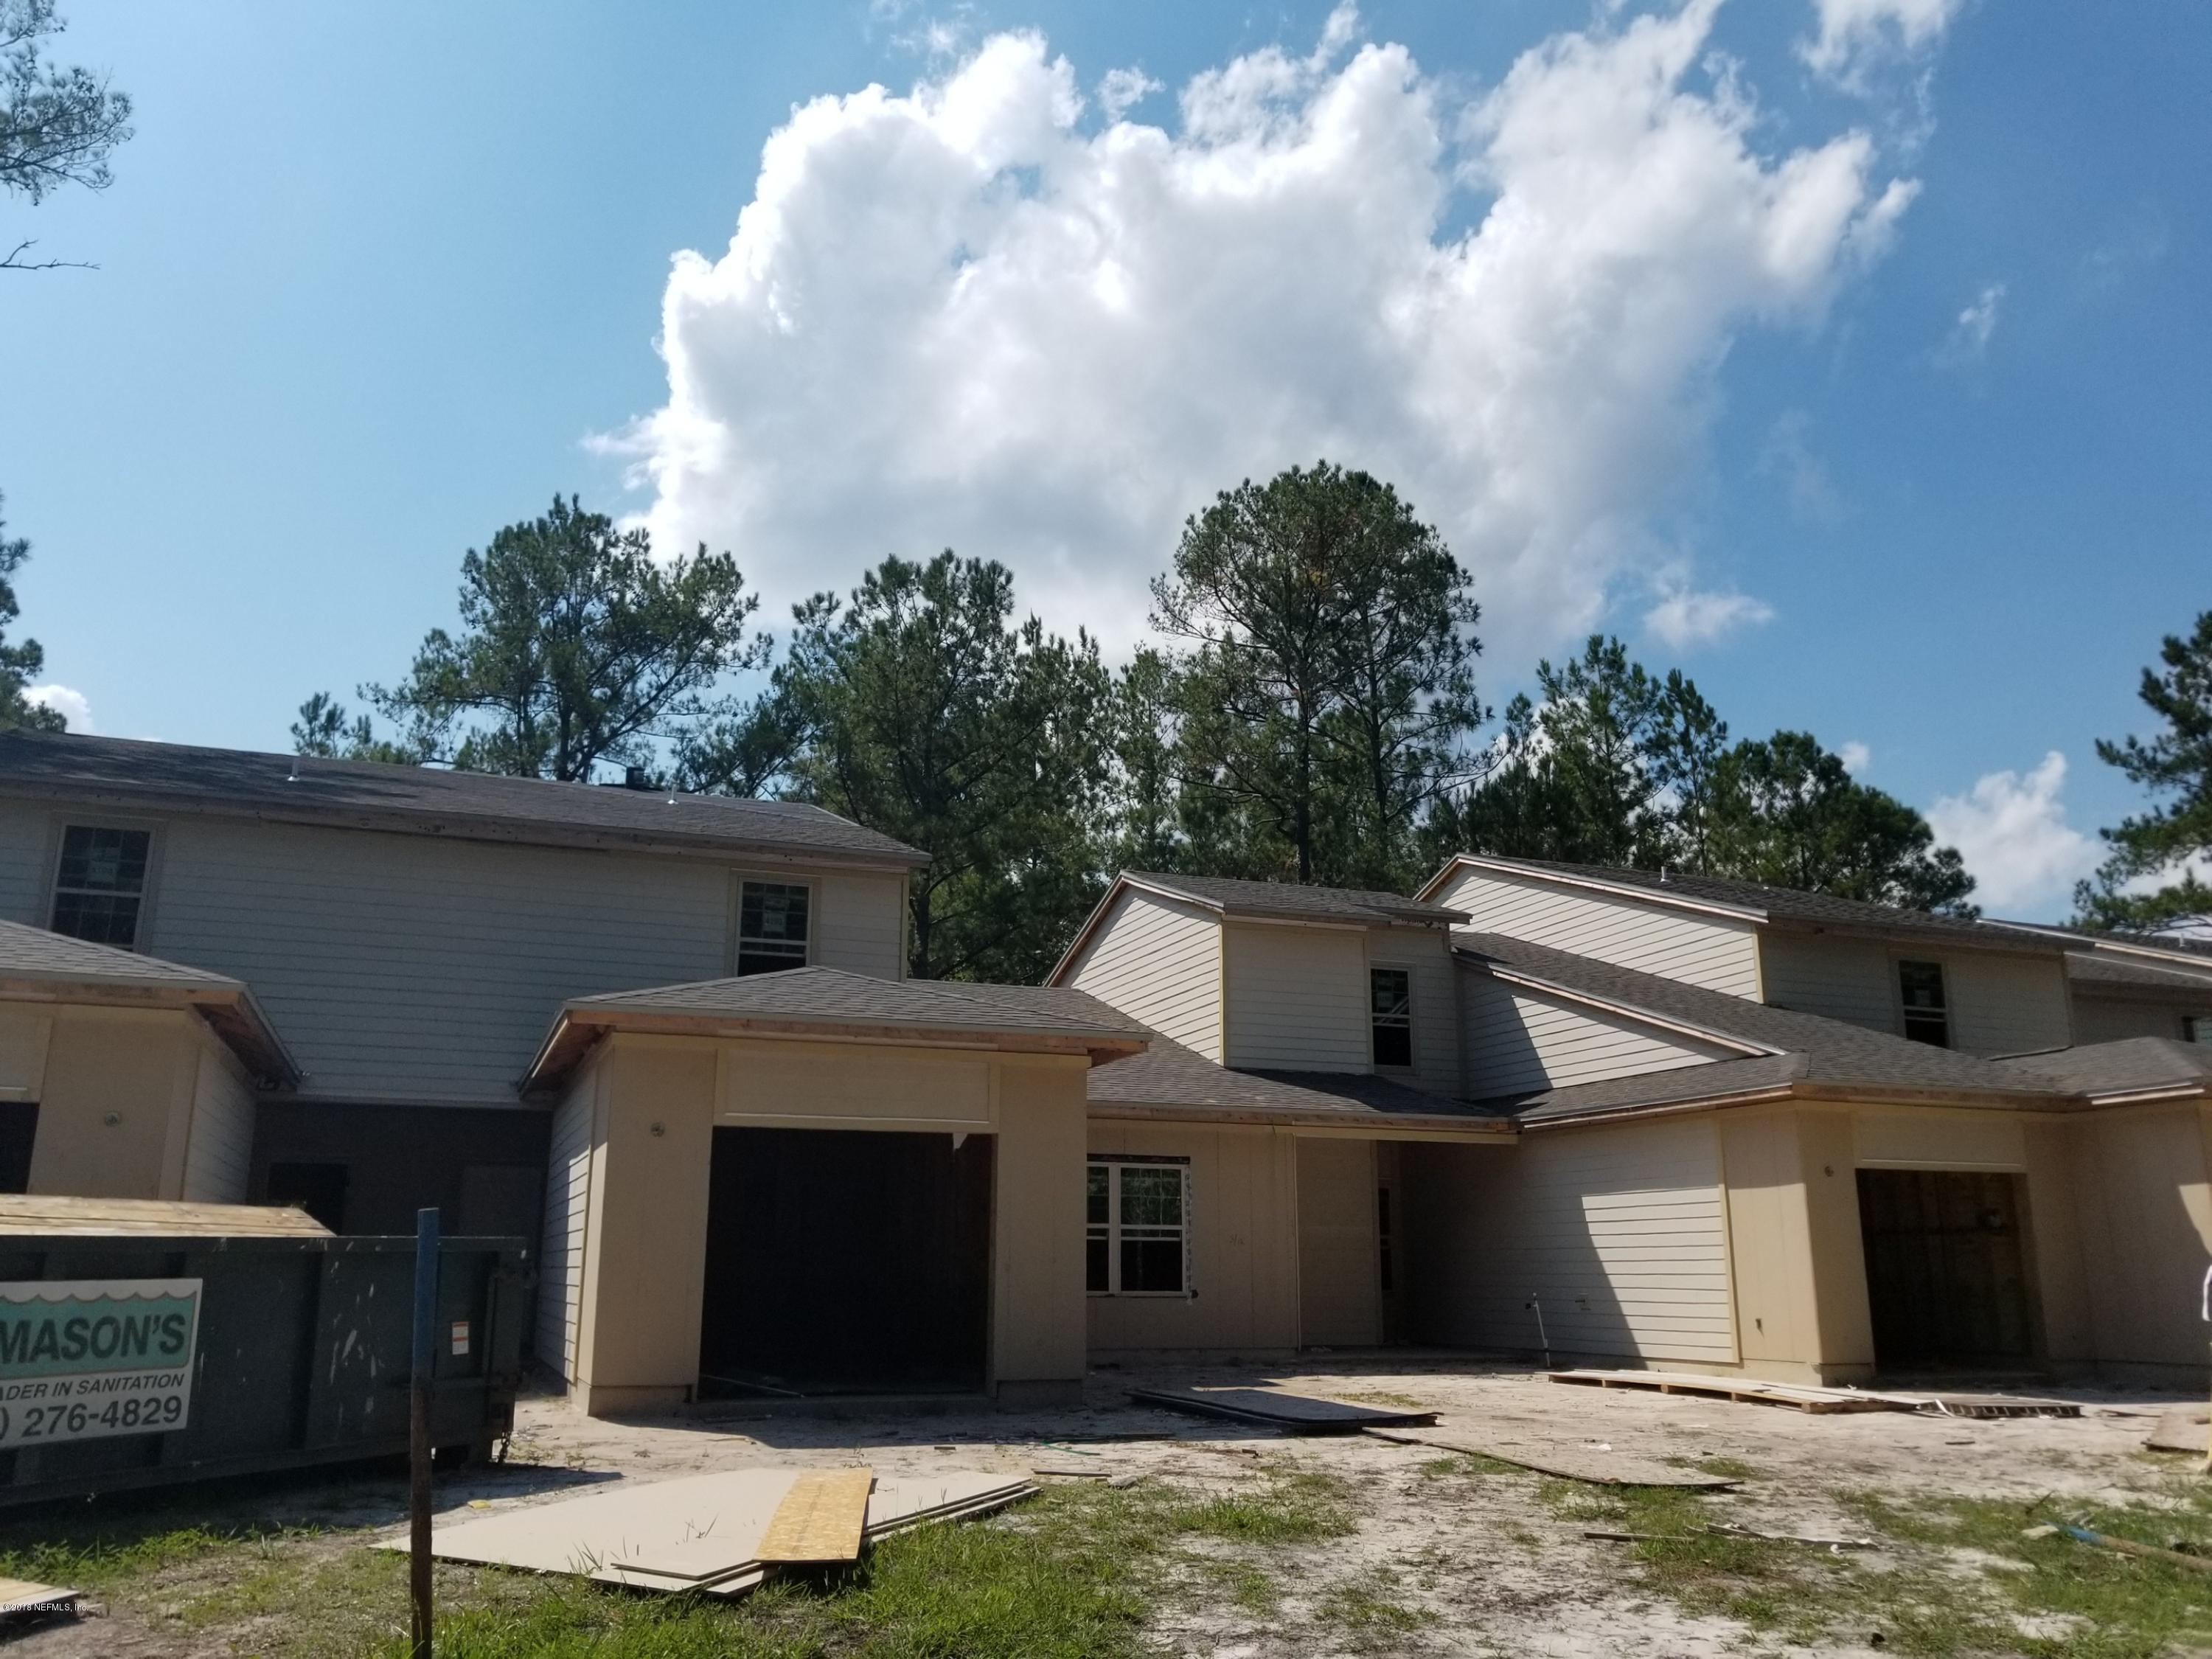 4192 QUIET CREEK, MIDDLEBURG, FLORIDA 32068, 3 Bedrooms Bedrooms, ,2 BathroomsBathrooms,Residential - condos/townhomes,For sale,QUIET CREEK,845493